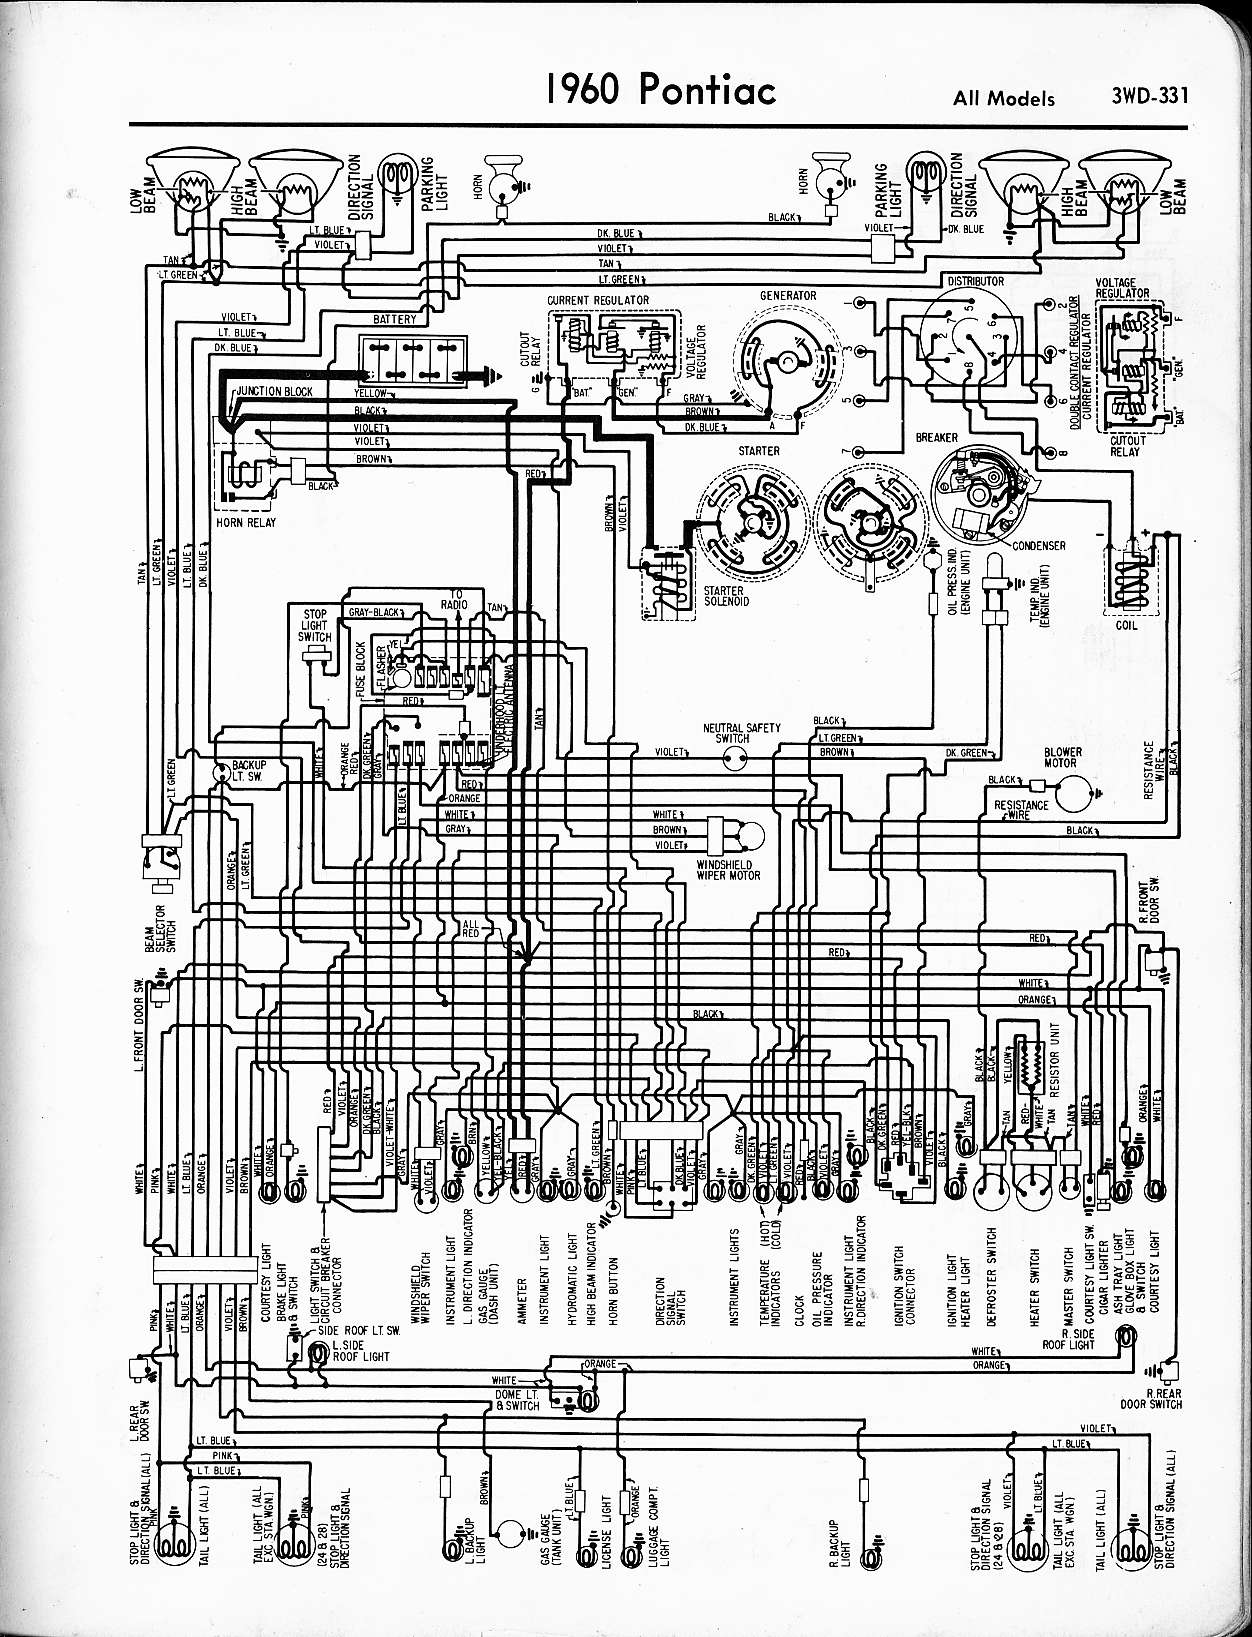 1969 Lemans Wiring Diagram Trusted Diagrams 1970 Pontiac Example Electrical U2022 Rh 162 212 157 63